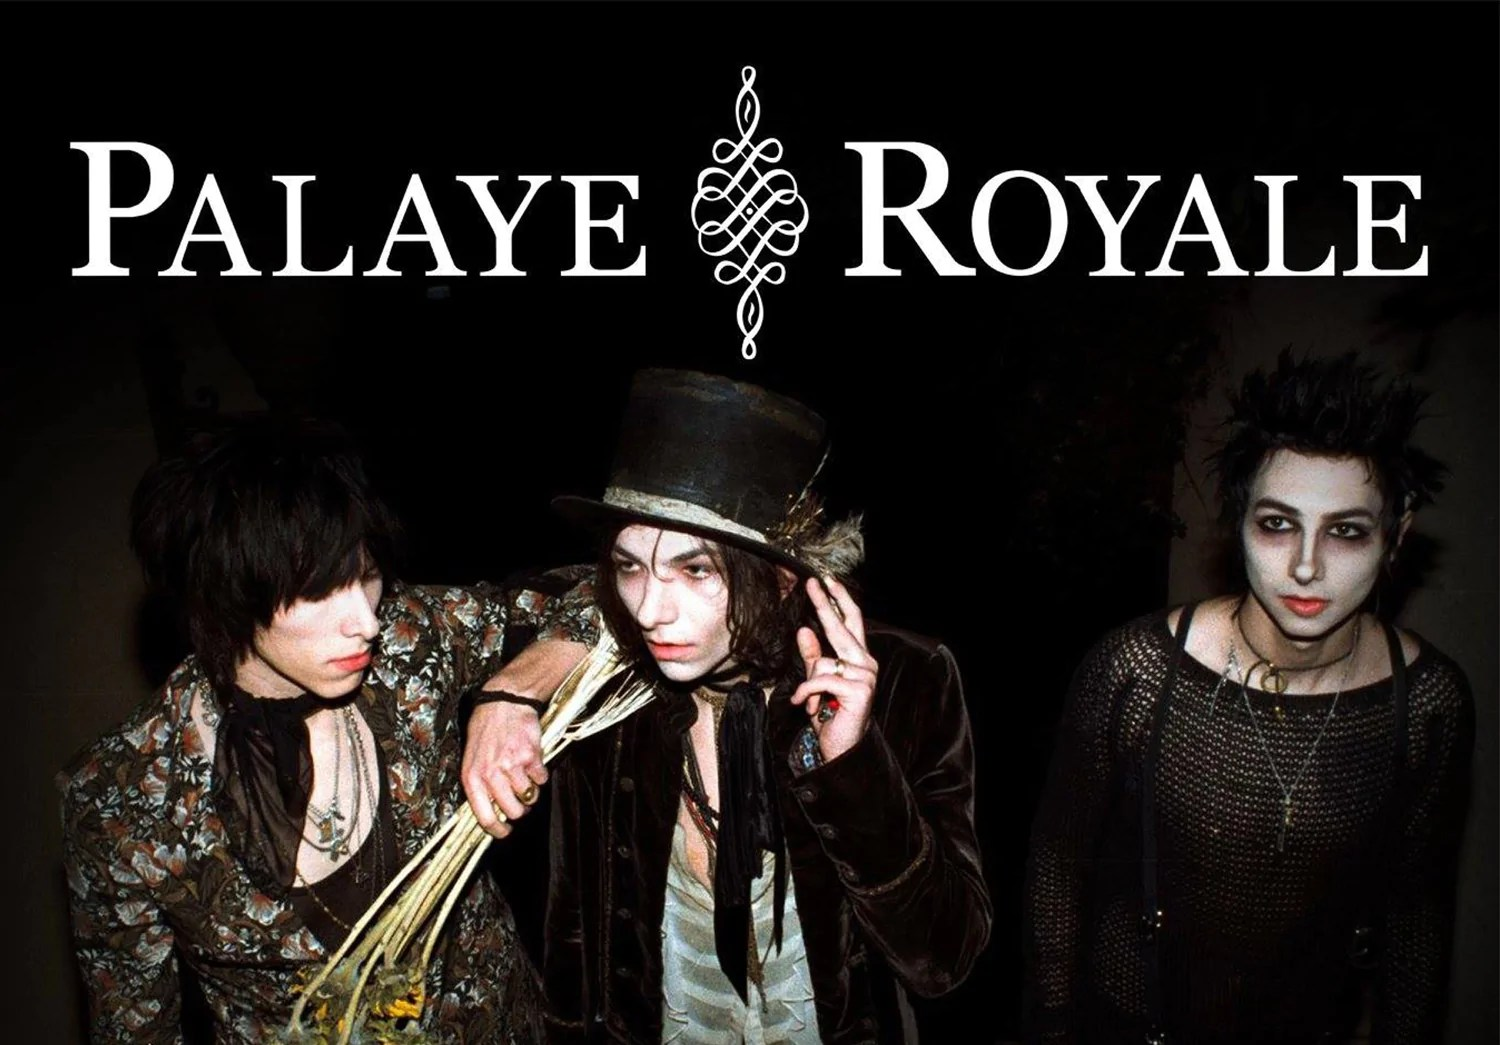 Fall Live Wallpaper For Phone Palaye Royale Tagged Quot T Shirts Quot Absolute Merch